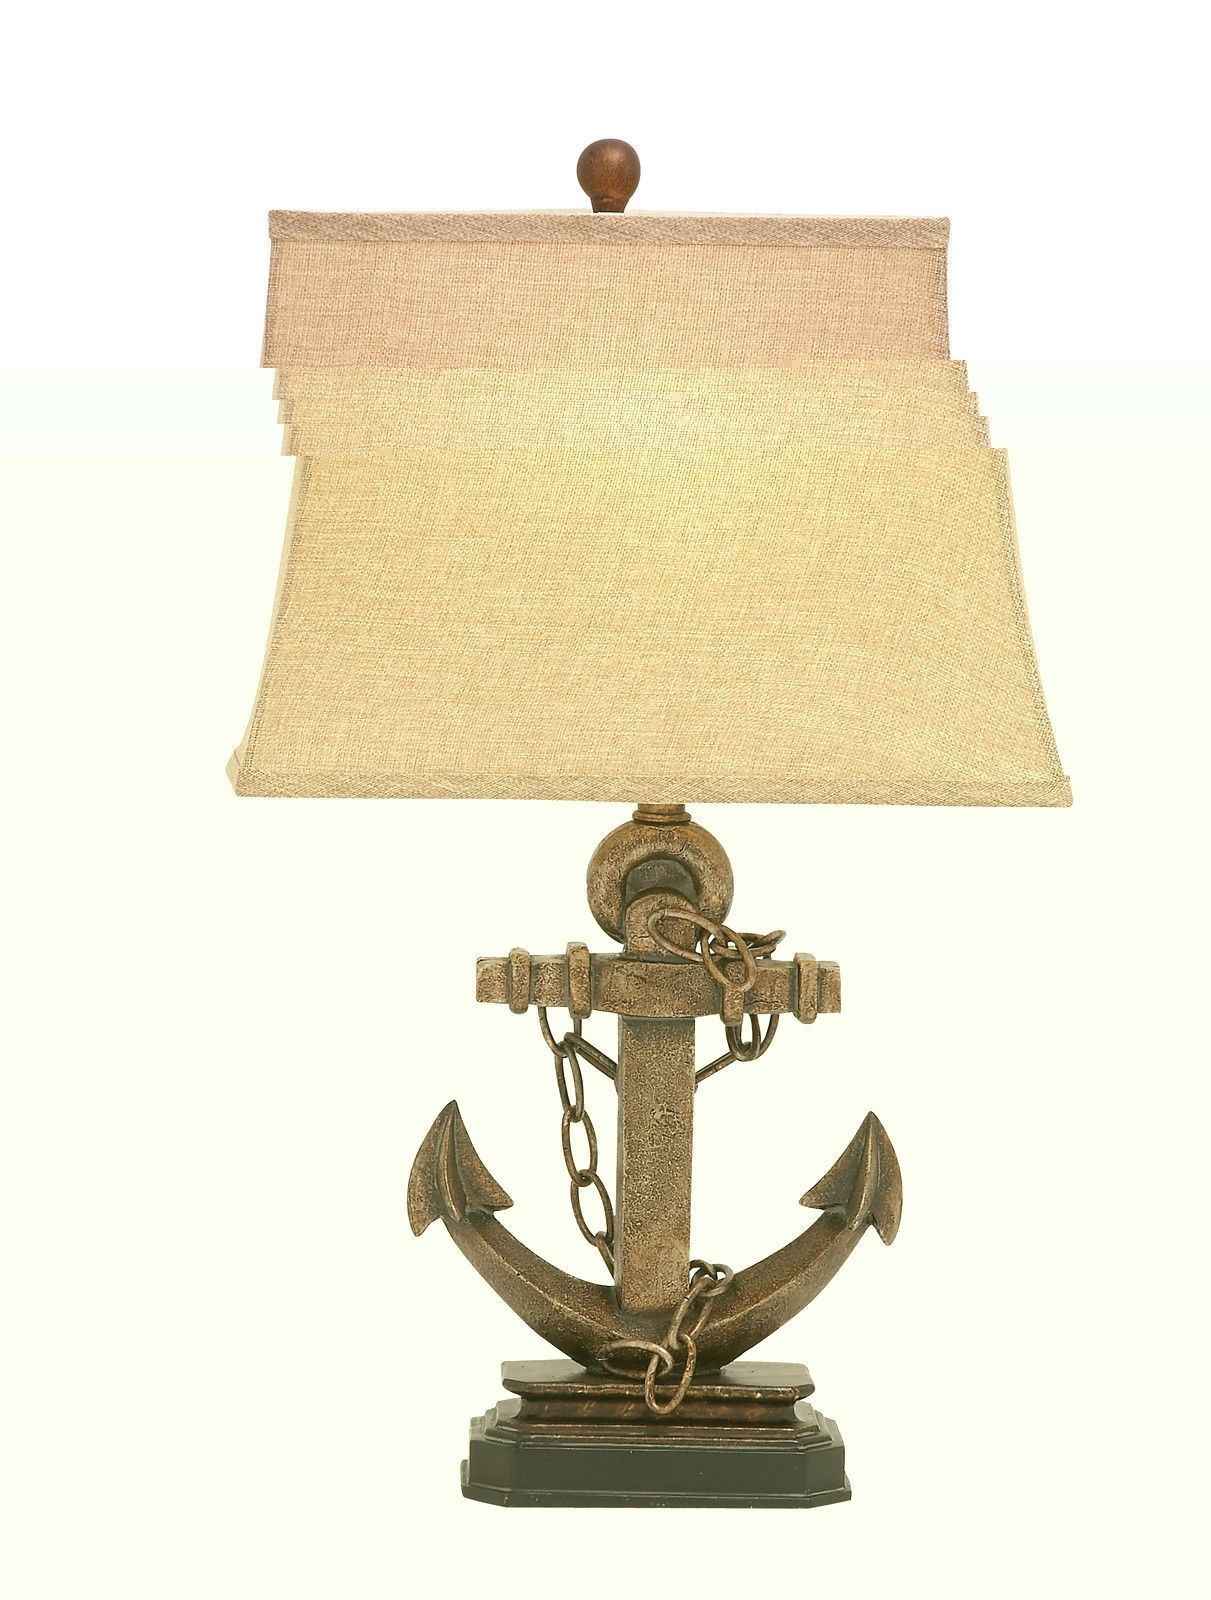 gold brass colored ship anchor accent table lamp nautical ocean lamps sea decor entry and mirror set battery operated ikea best outdoor umbrellas antique kidney home stuff